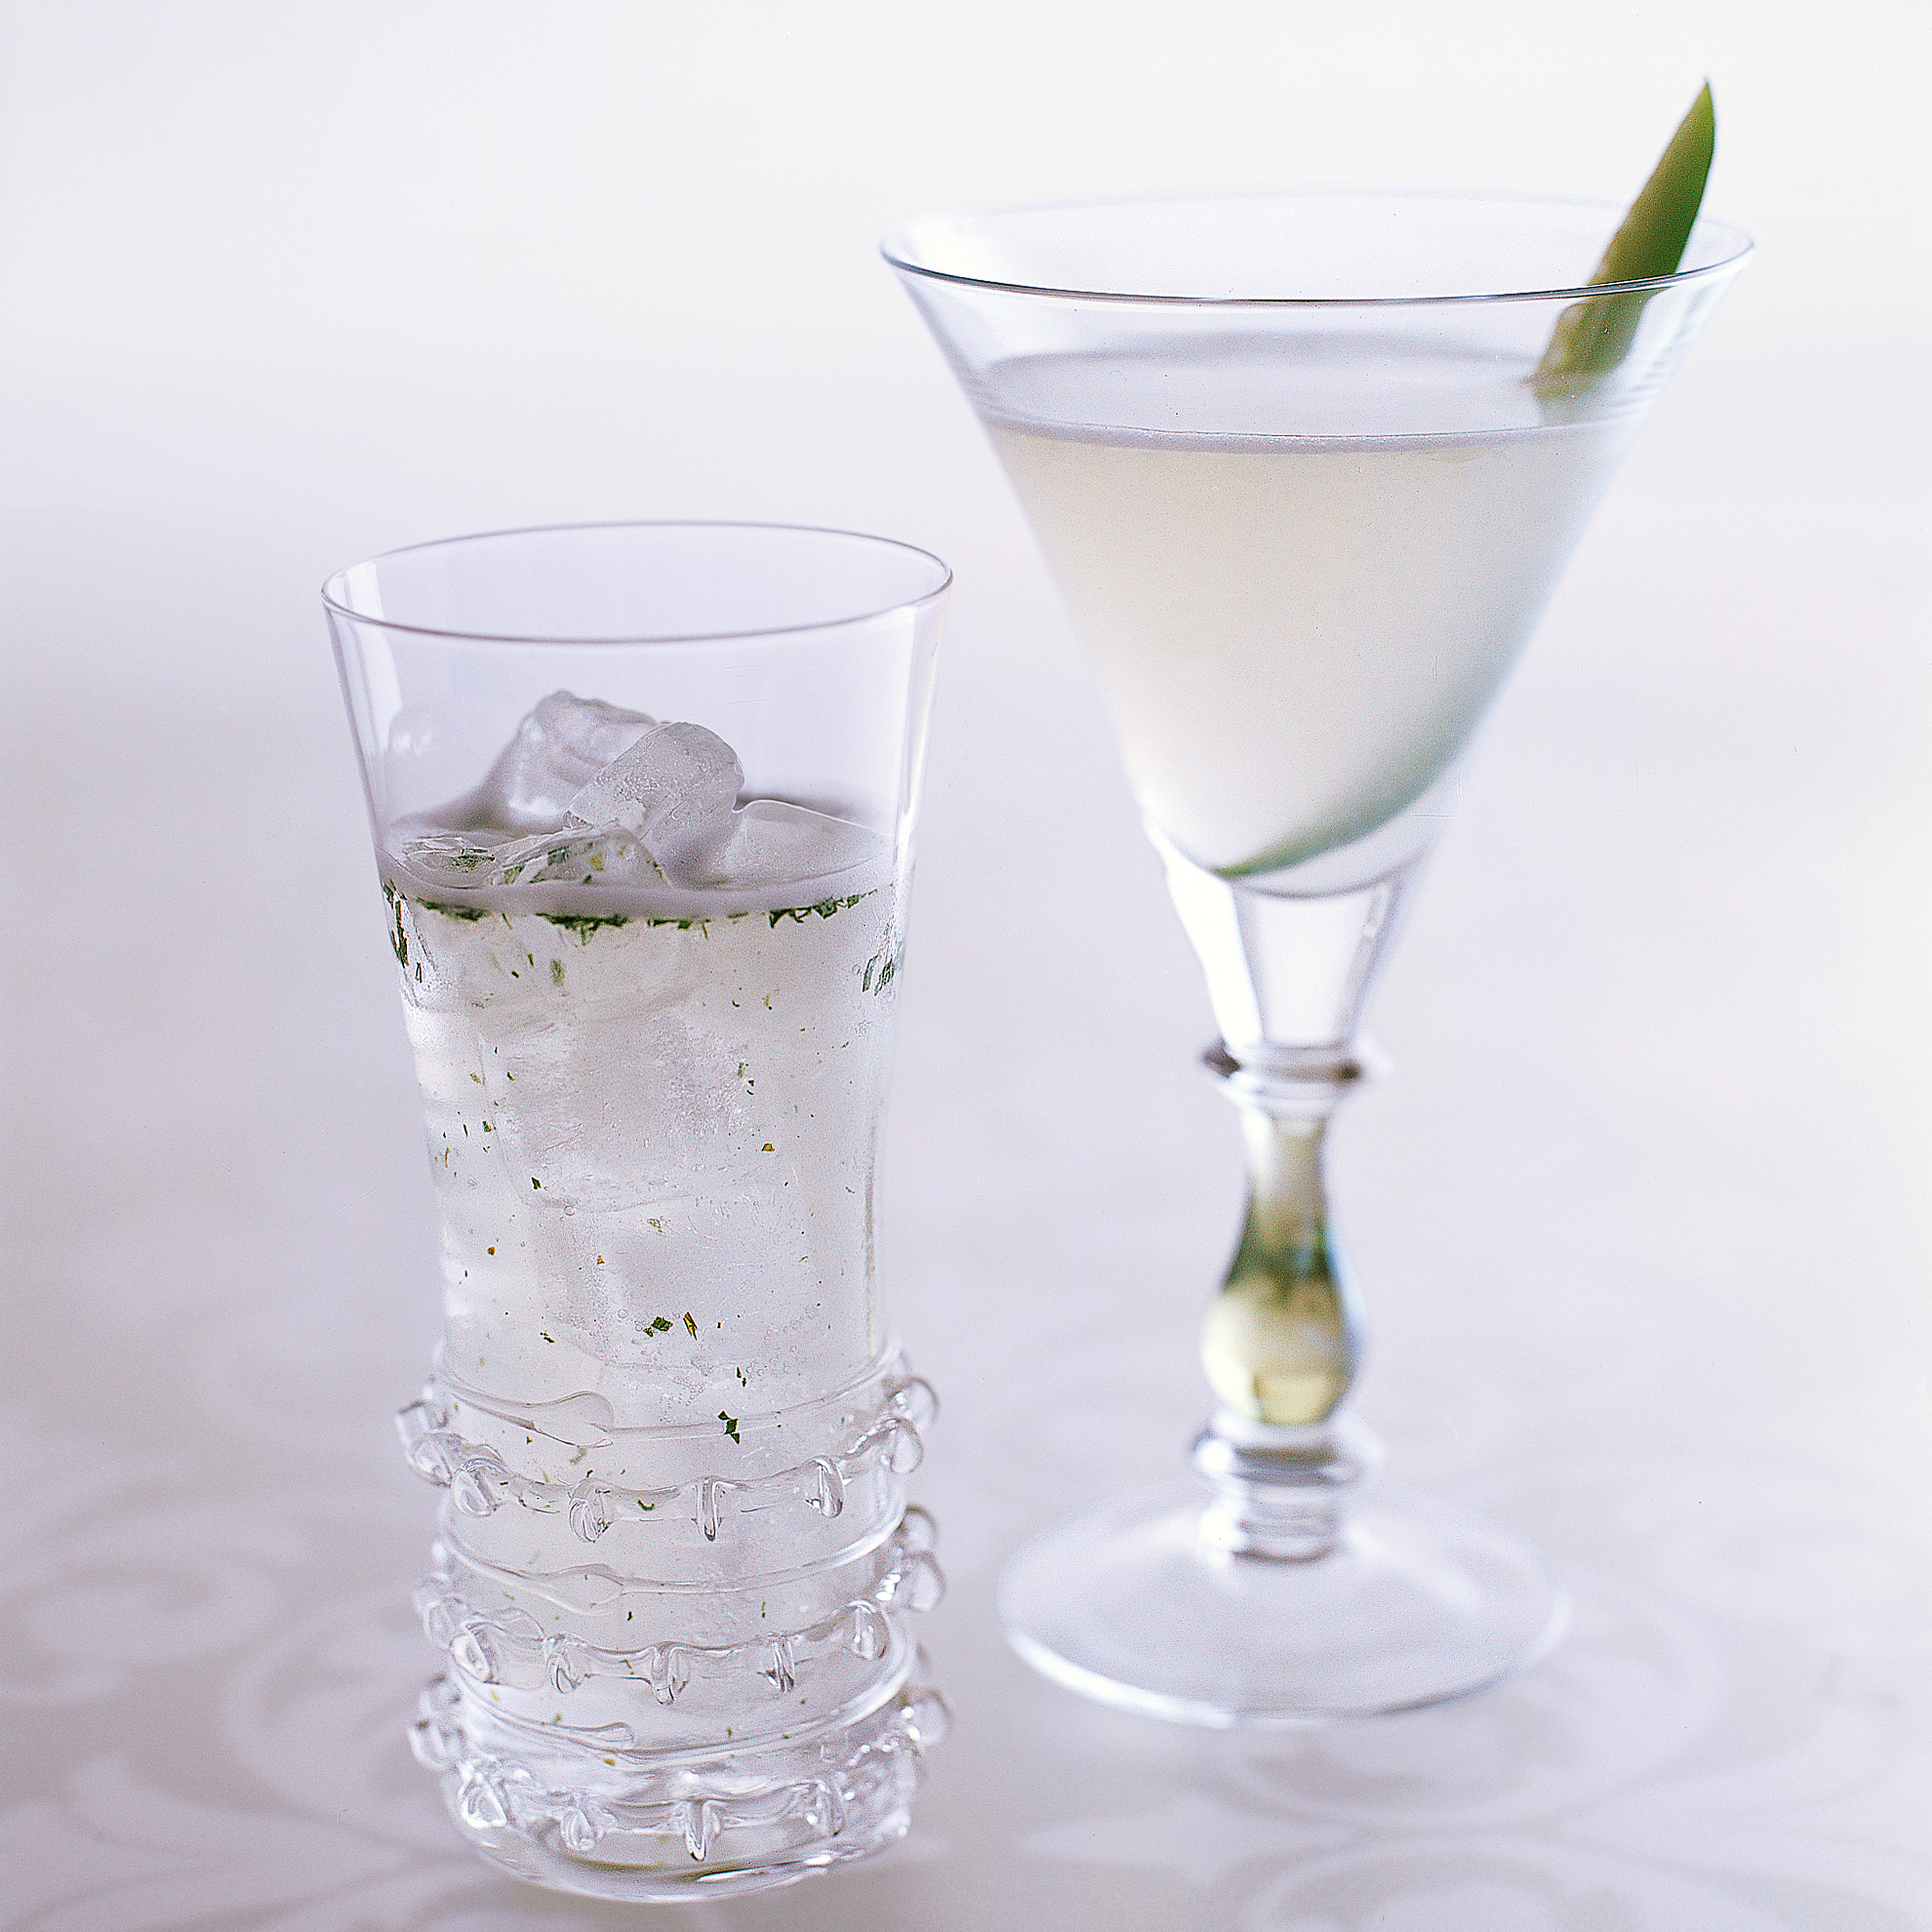 Cocktail Recipes: Cucumber Cosmopolitan